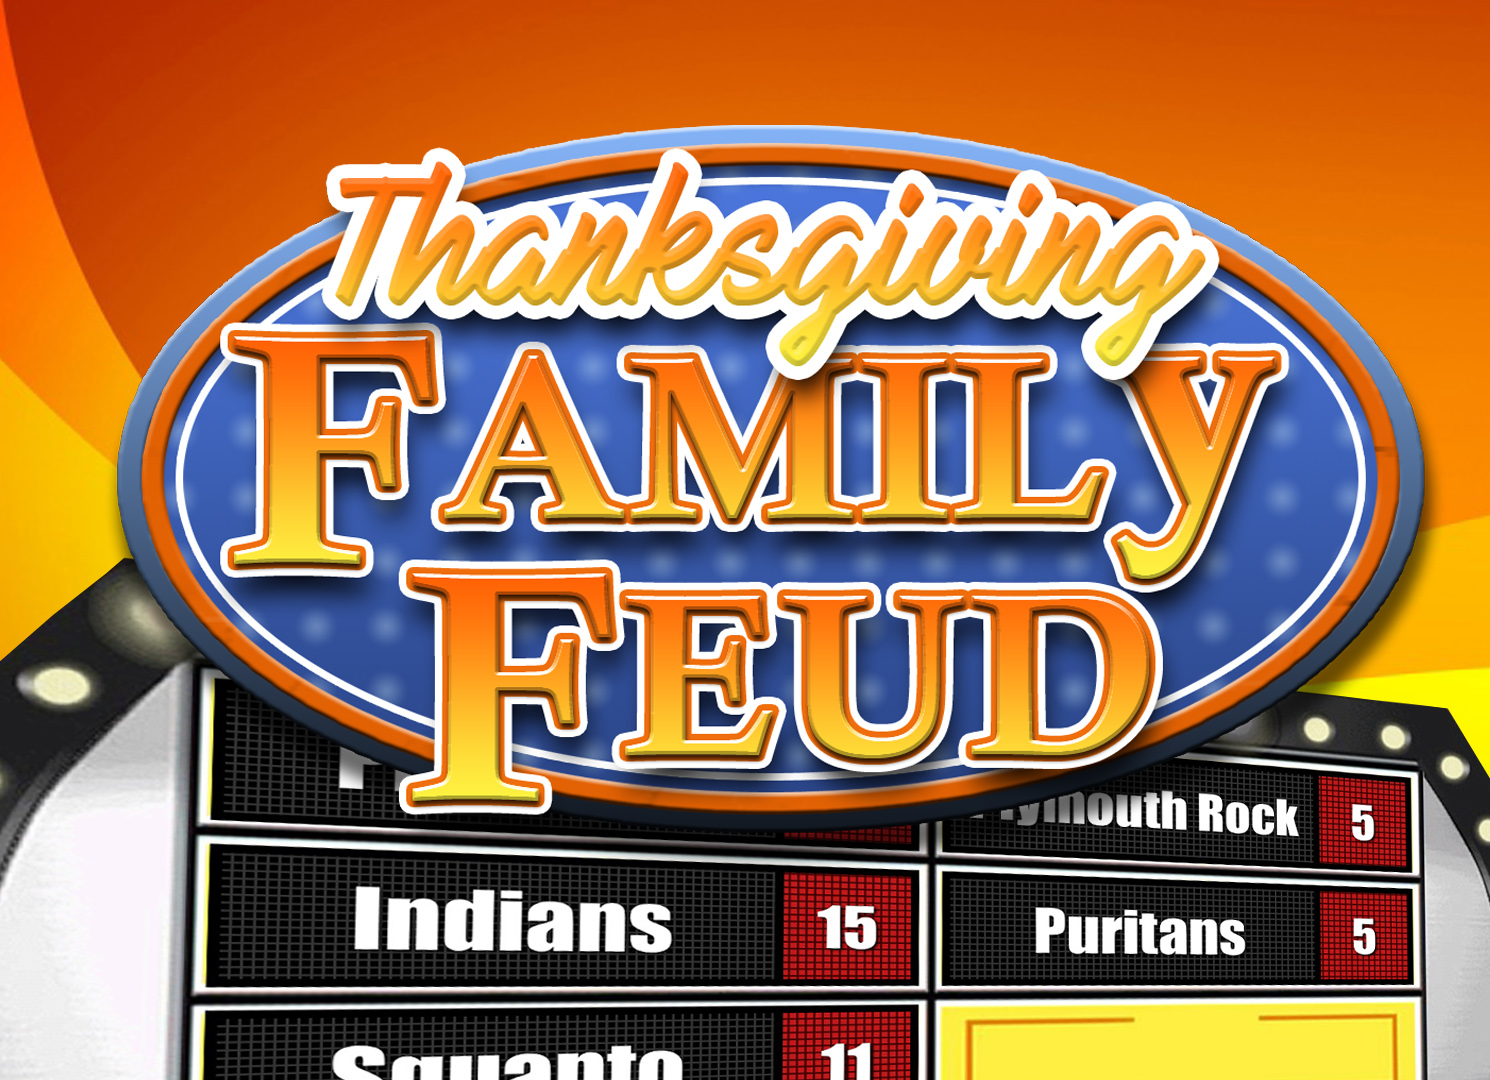 Thanksgiving family feud trivia powerpoint game mac and pc thanksgiving family feud trivia powerpoint game mac and pc compatible youth downloadsyouth downloads alramifo Choice Image